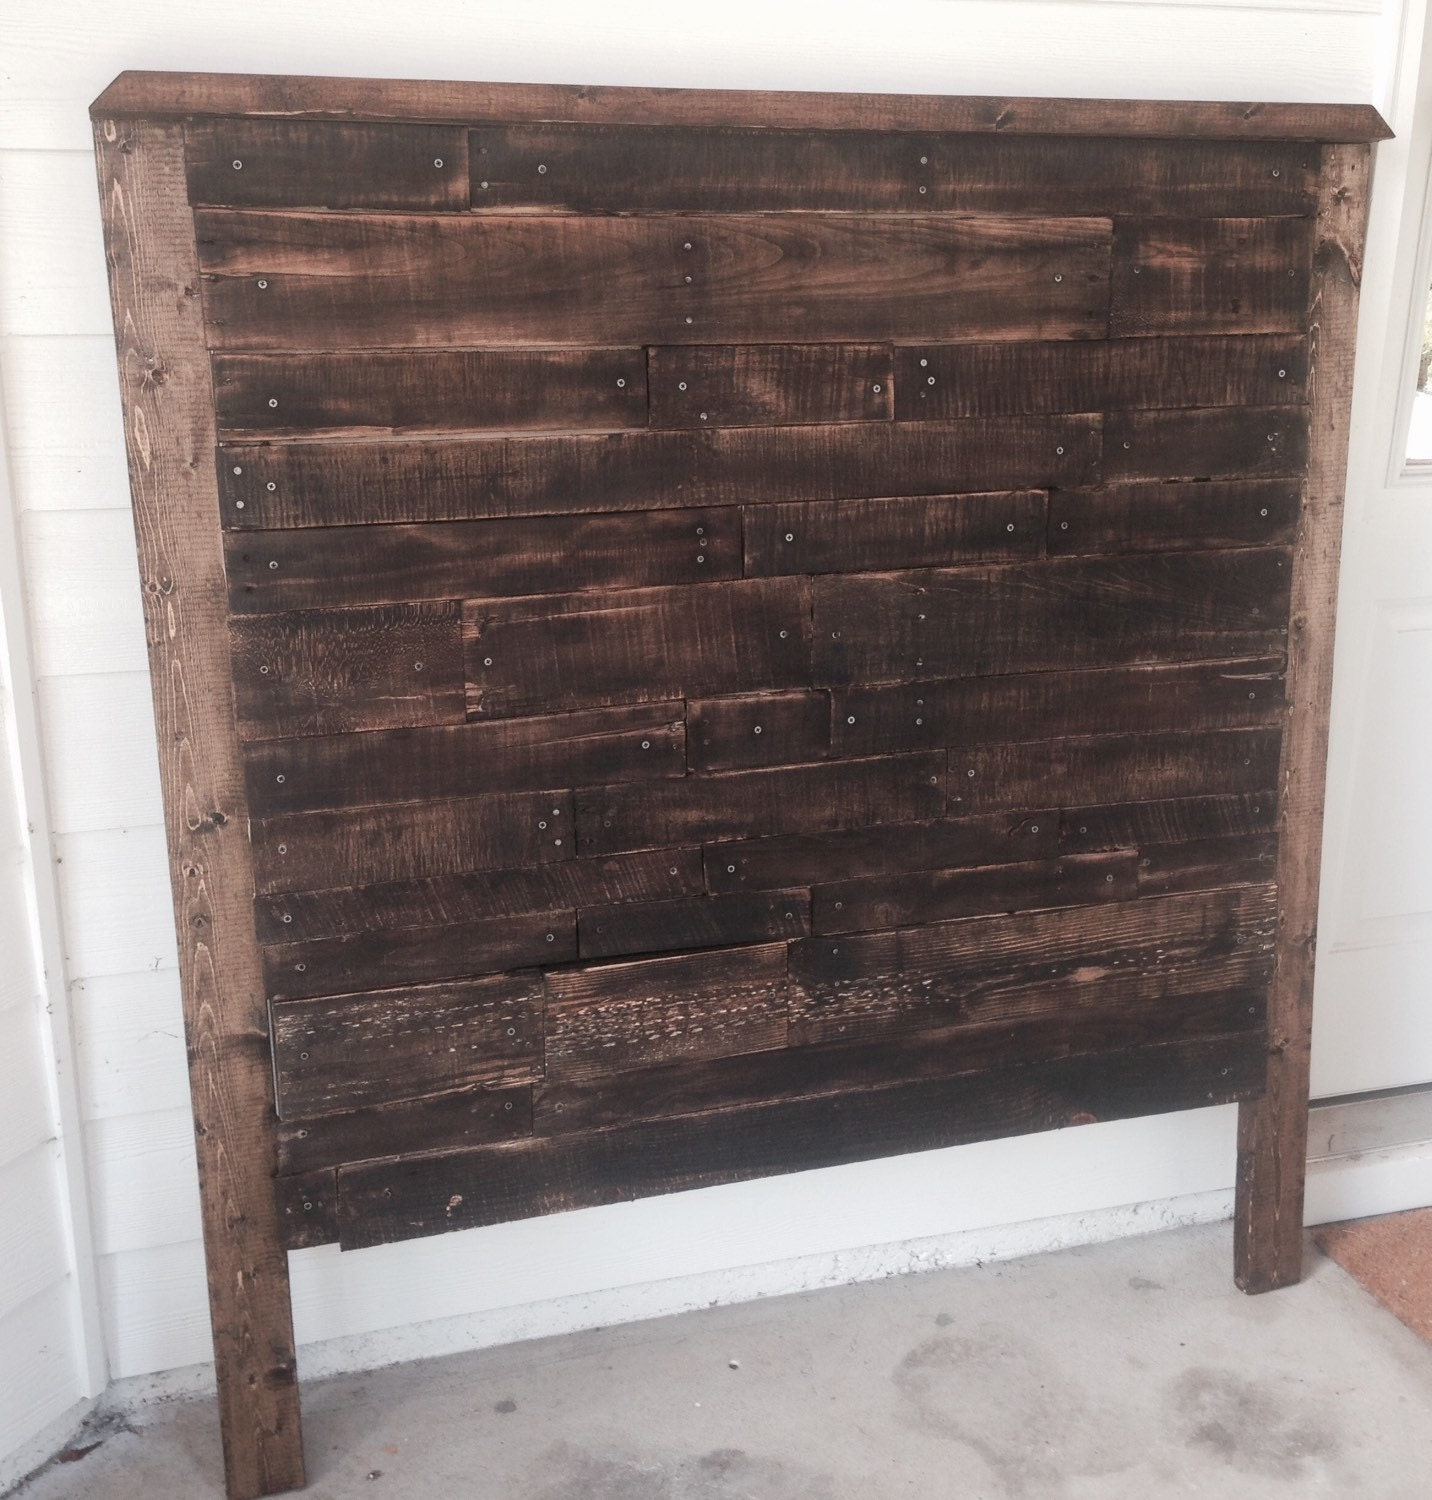 Pallet Headboard Rustic Aged Wood Farmhouse Style Queen